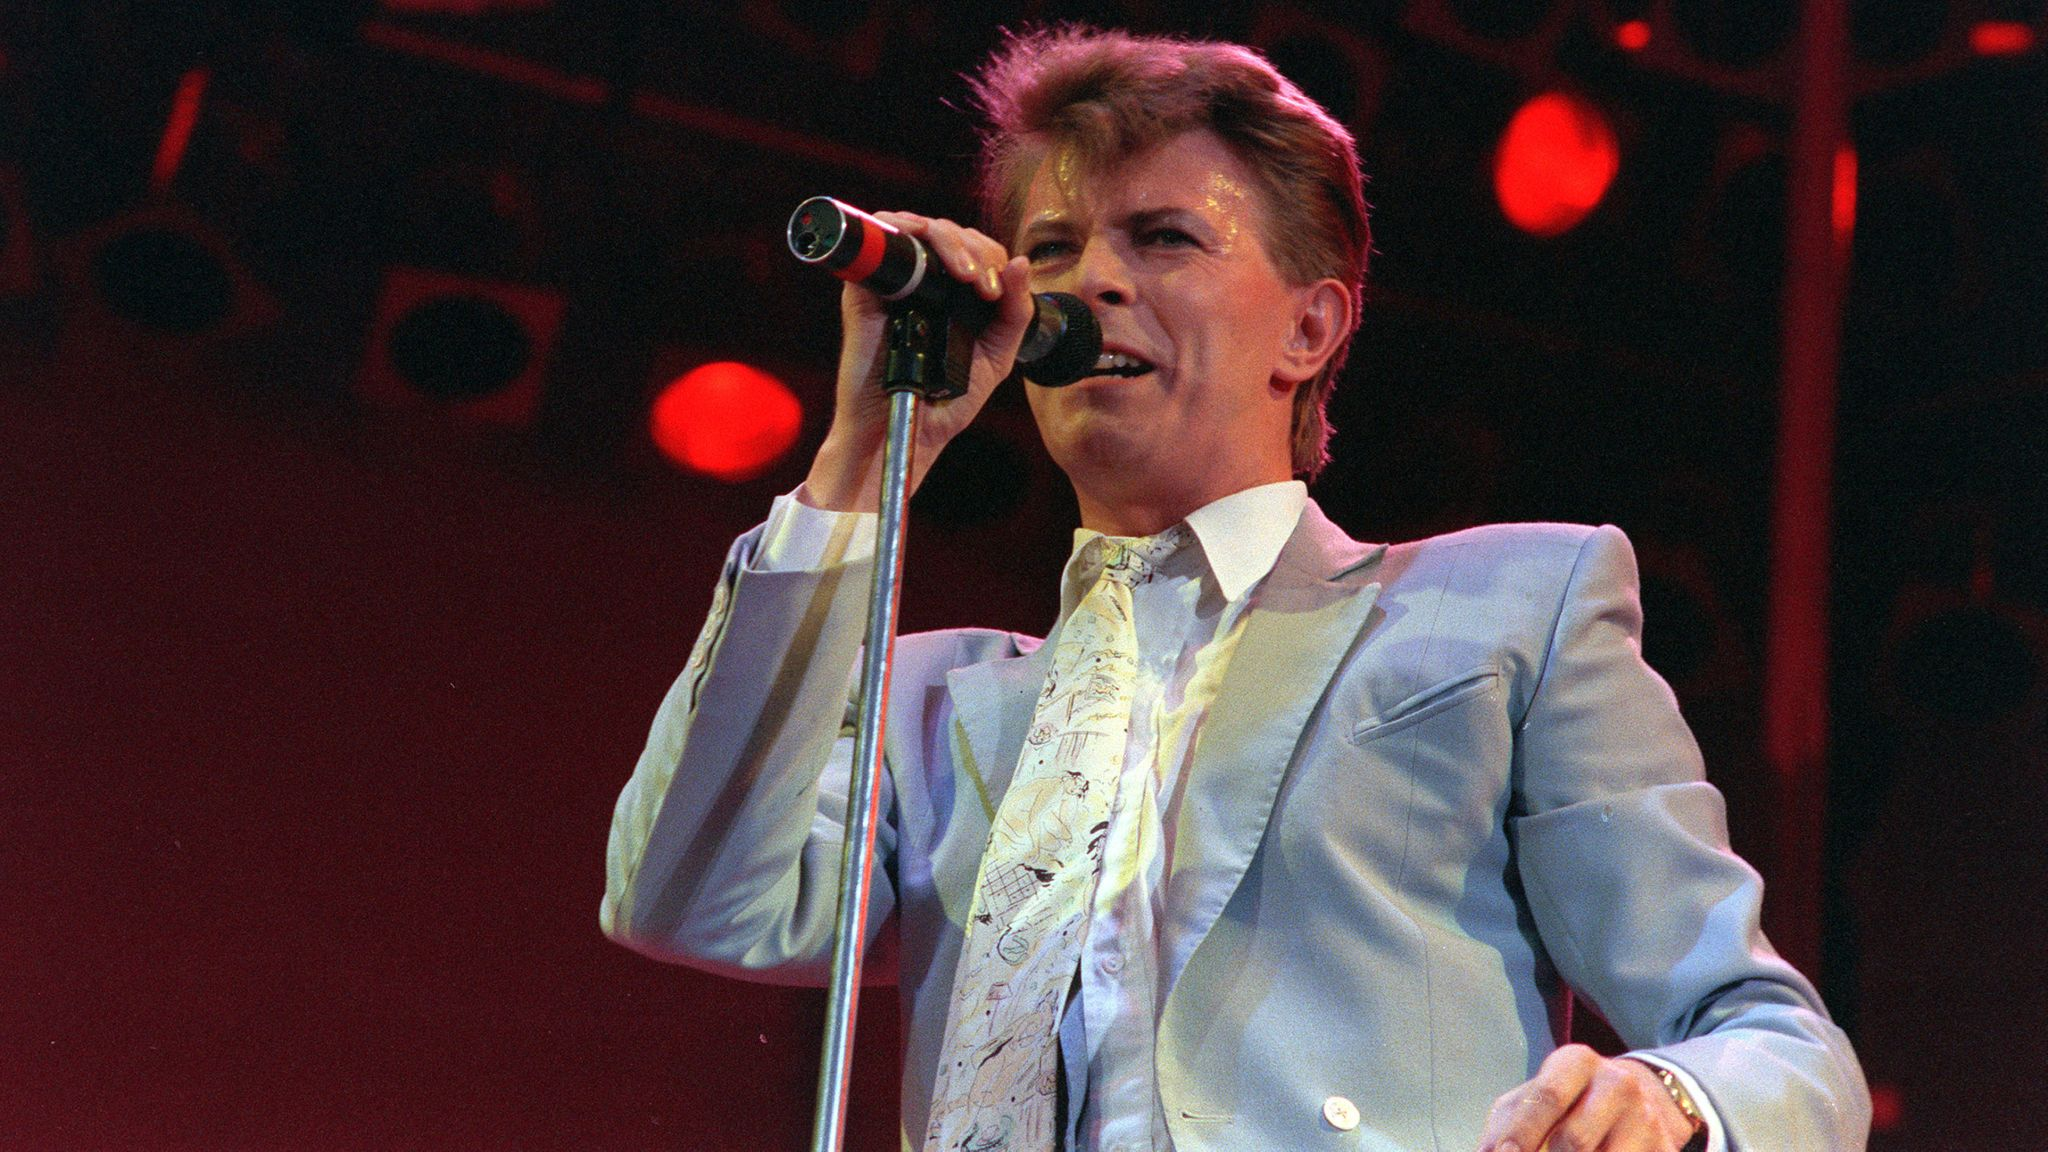 Rock star David Bowie performs on stage at Wembley Stadium, London, July 13, 1985, during the Live Aid famine relief rock concert. (AP Photo/Joe Schaber)